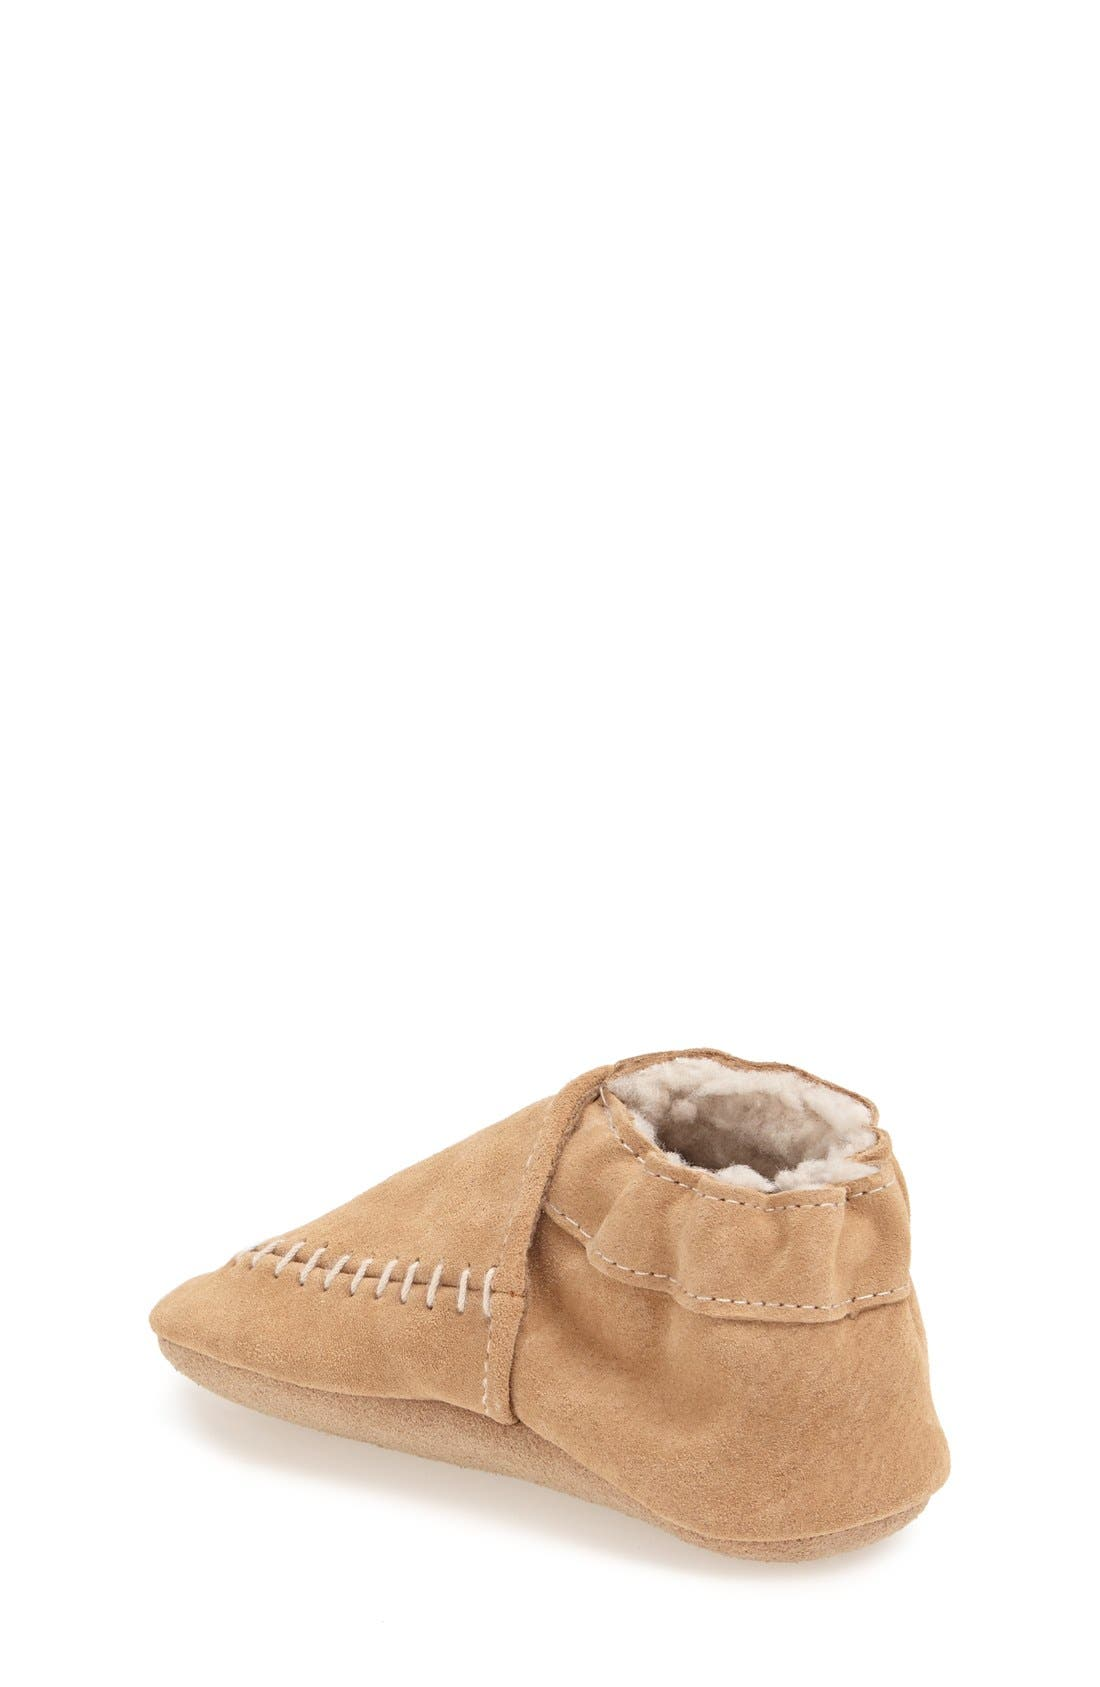 Cozy Moccasin Crib Shoe,                             Alternate thumbnail 2, color,                             Taupe